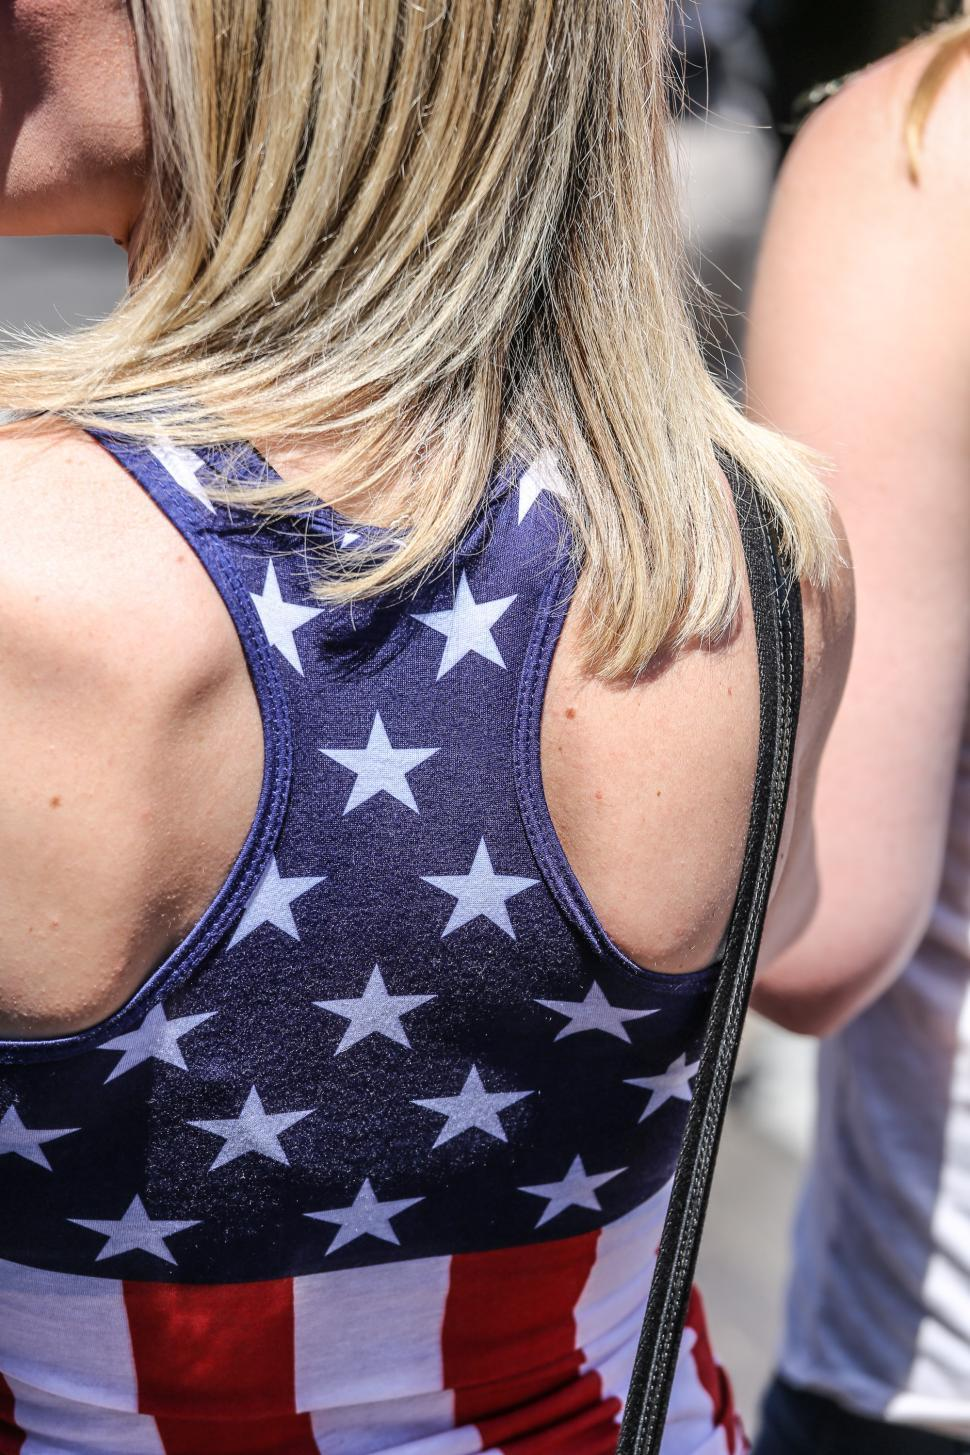 Download Free Stock HD Photo of Stars and stripes halter top Online